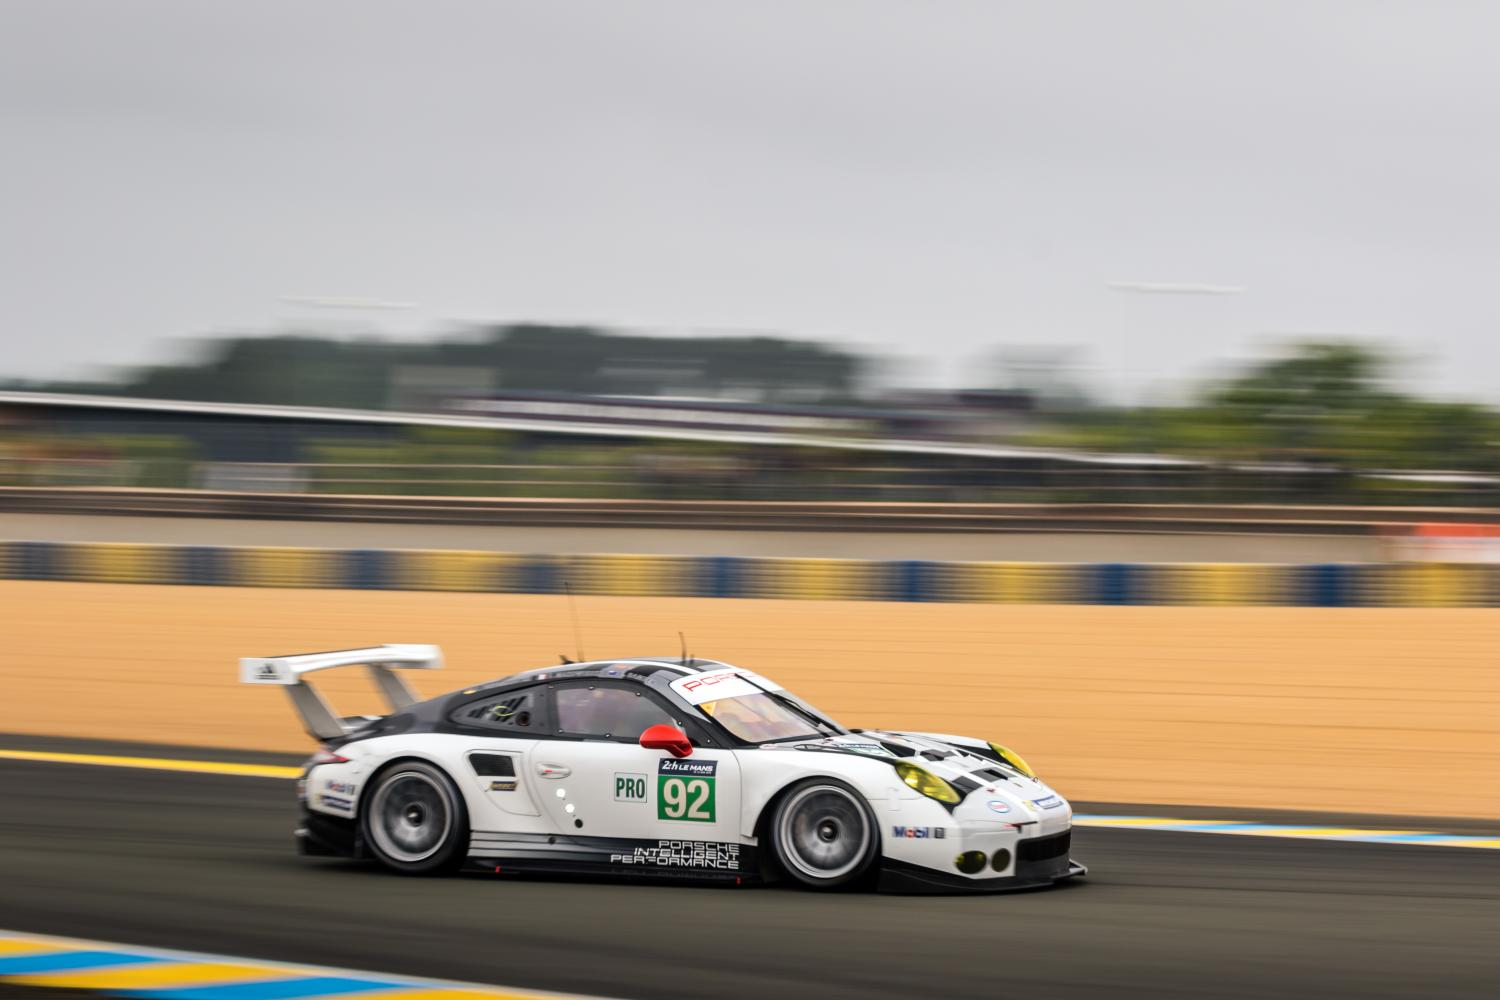 24 Hours of Le Mans Test Day - Round-up after the first session